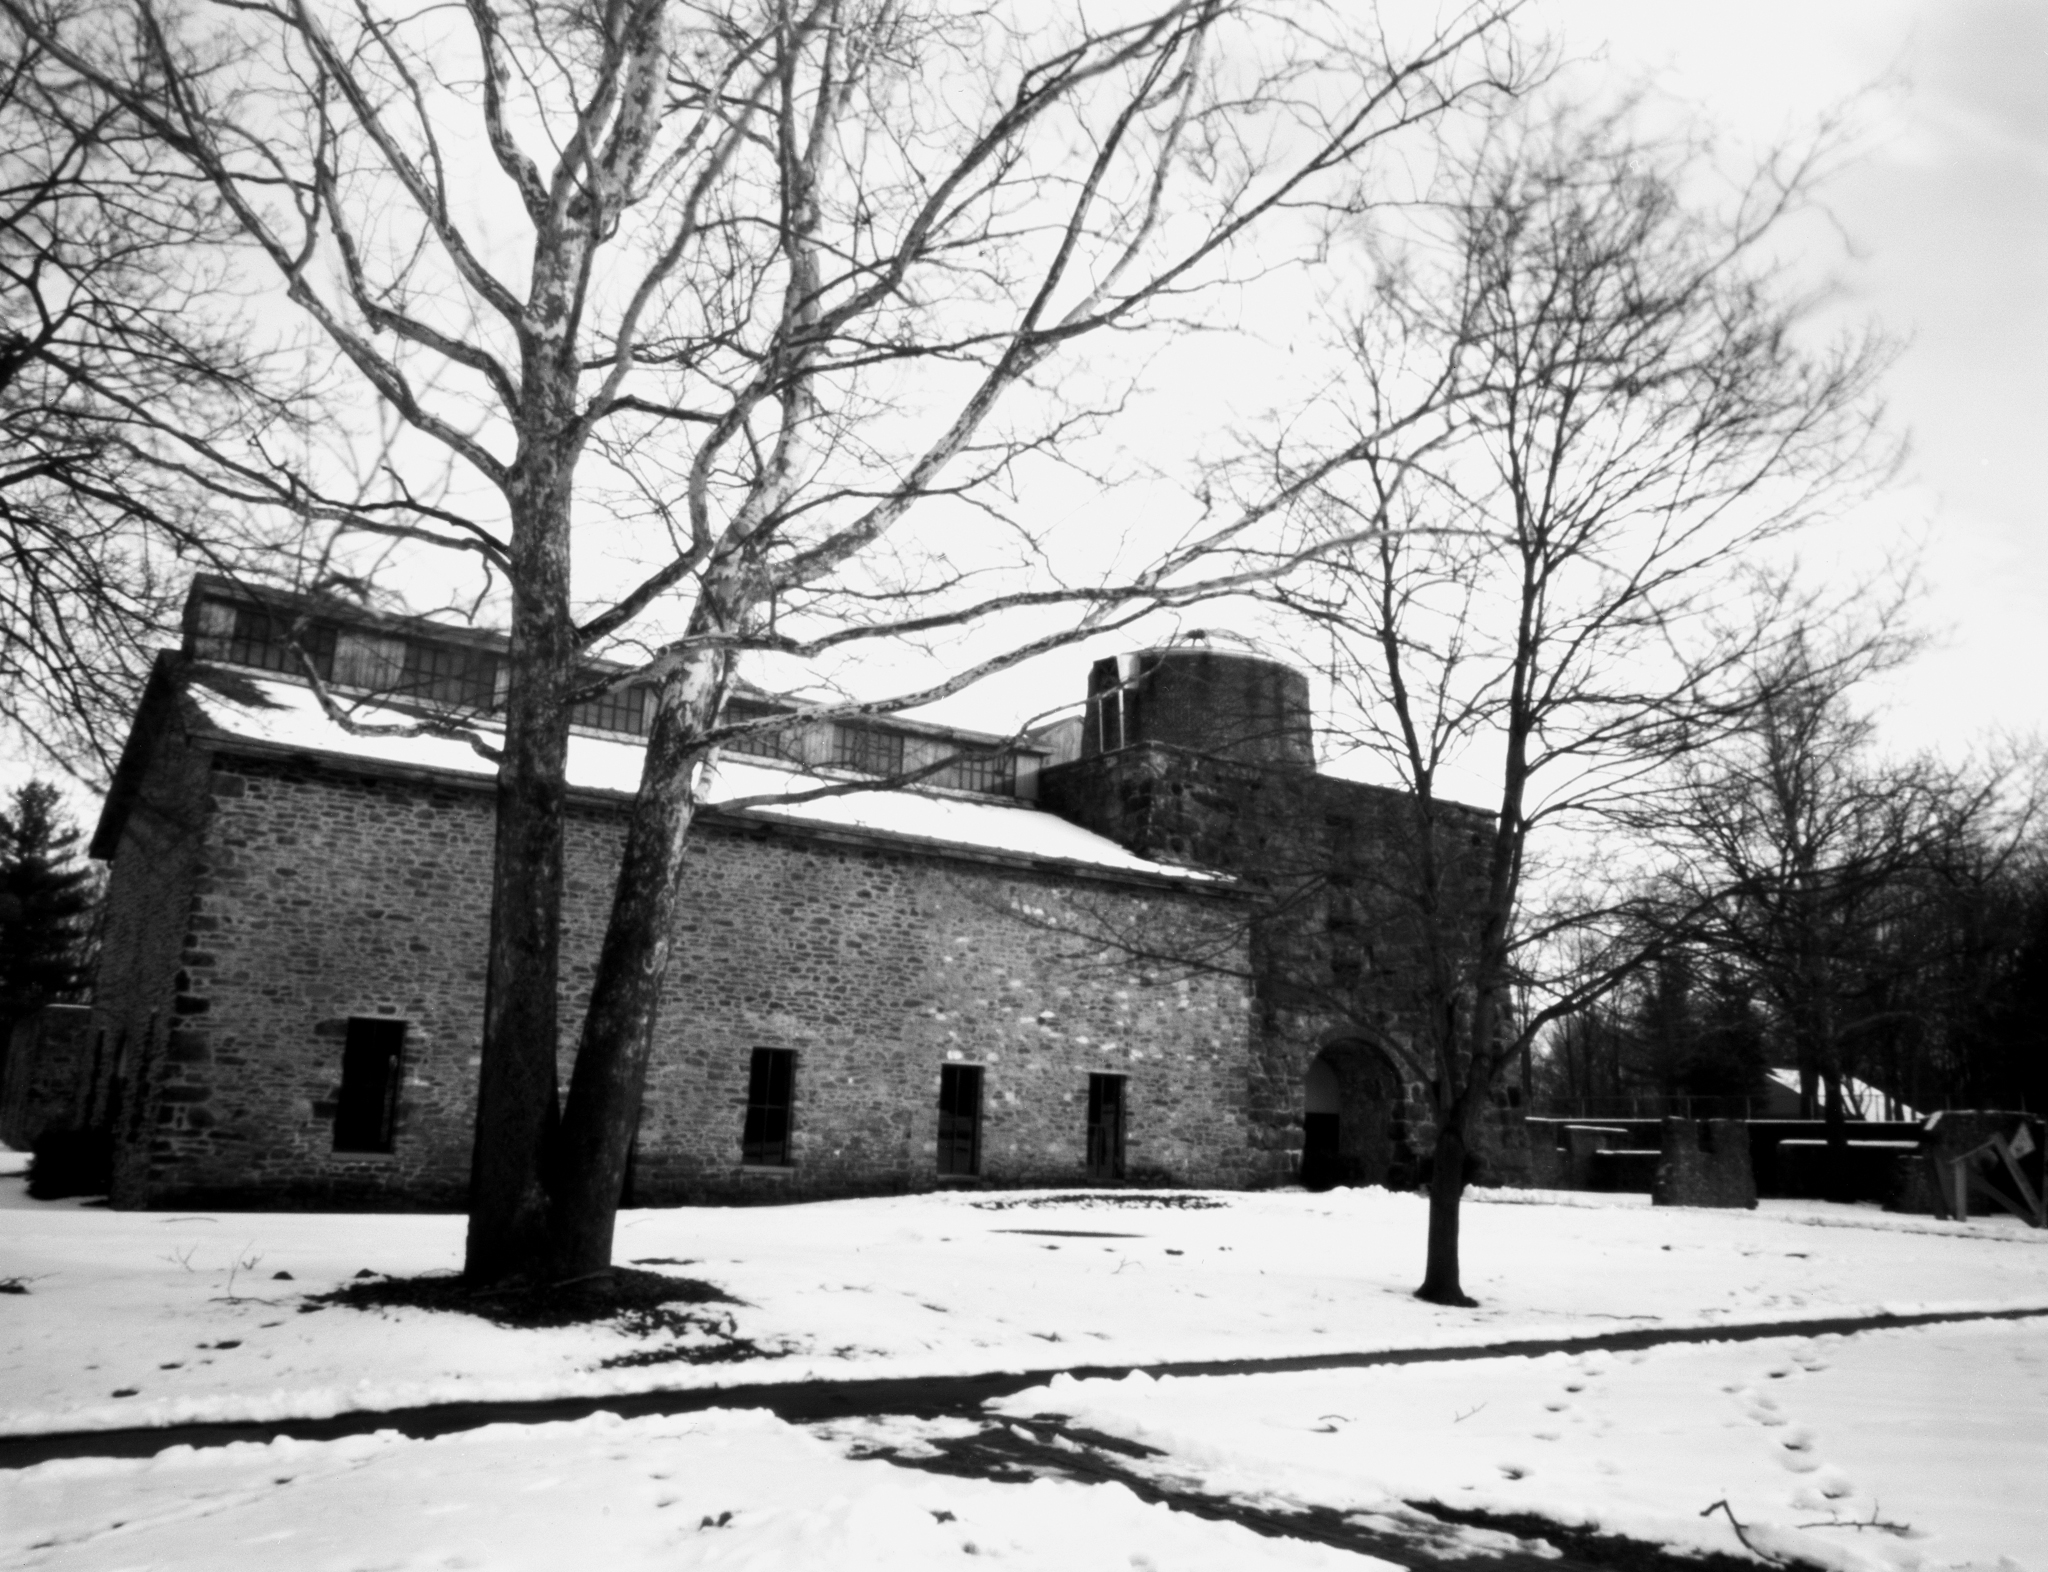 4x5_for_365_project_060_Lockridge_Furnace_museum.jpg